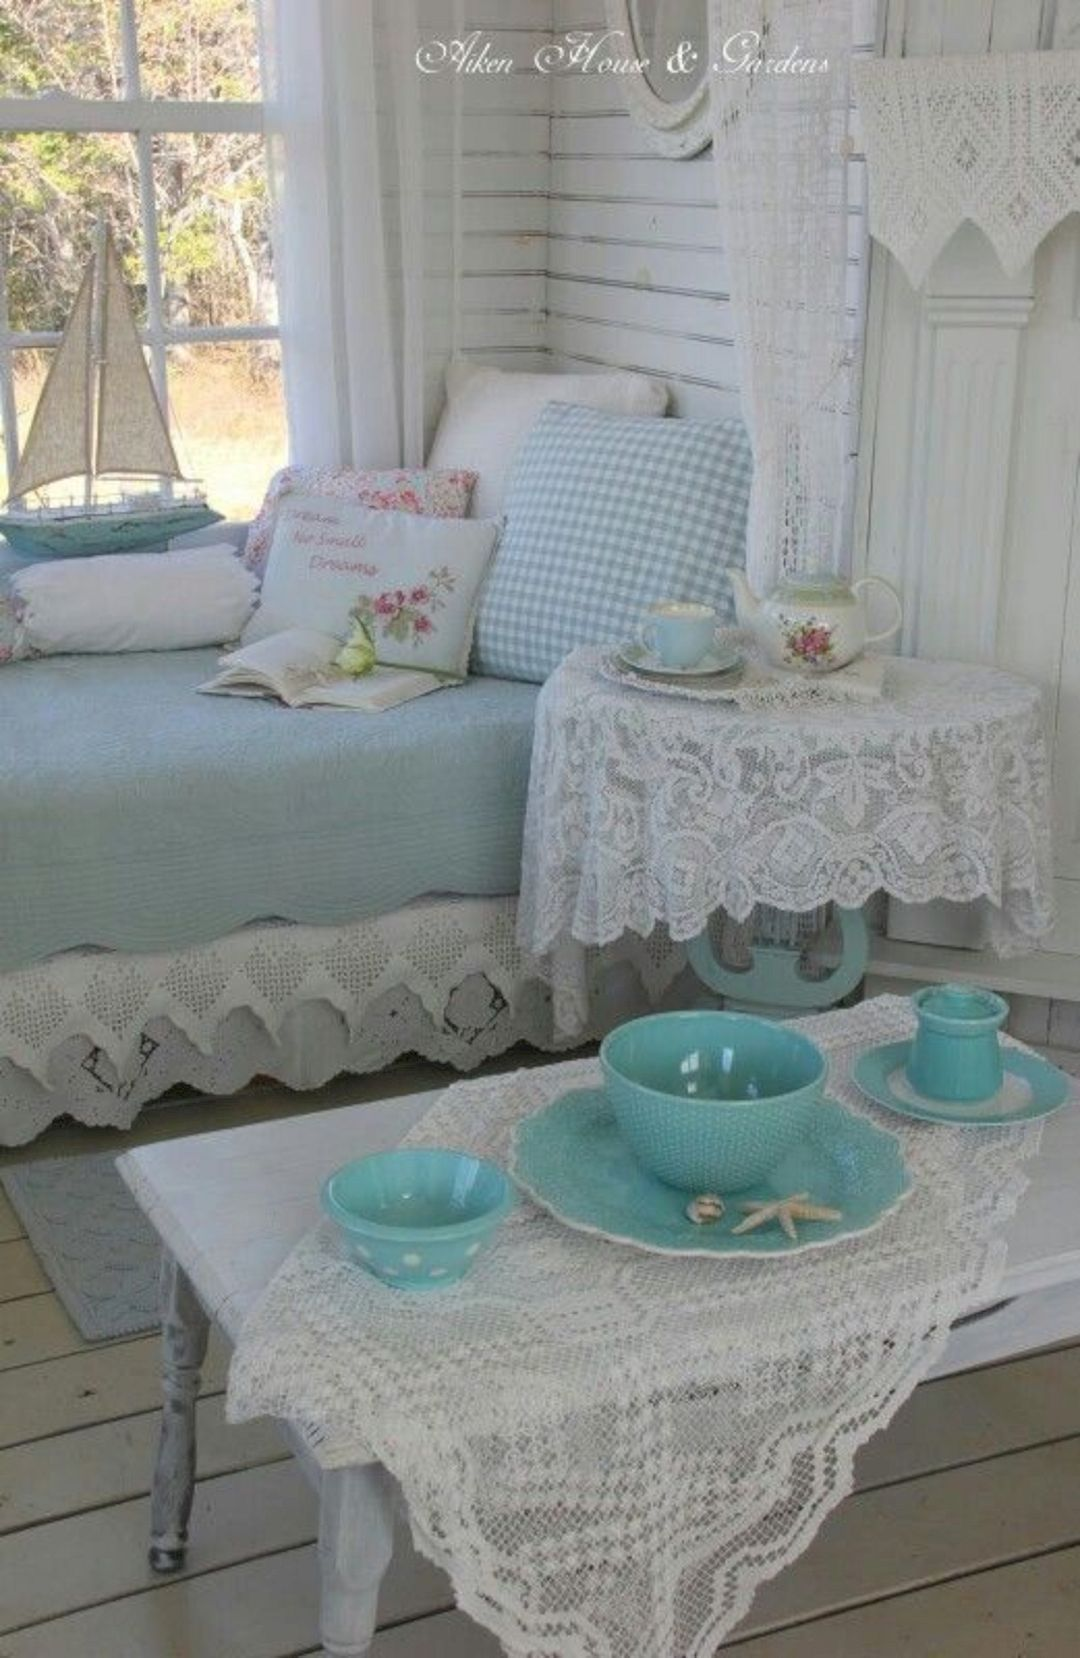 15 Shabby Chic Home Decoration Ideas To Steal  Https://www.futuristarchitecture.